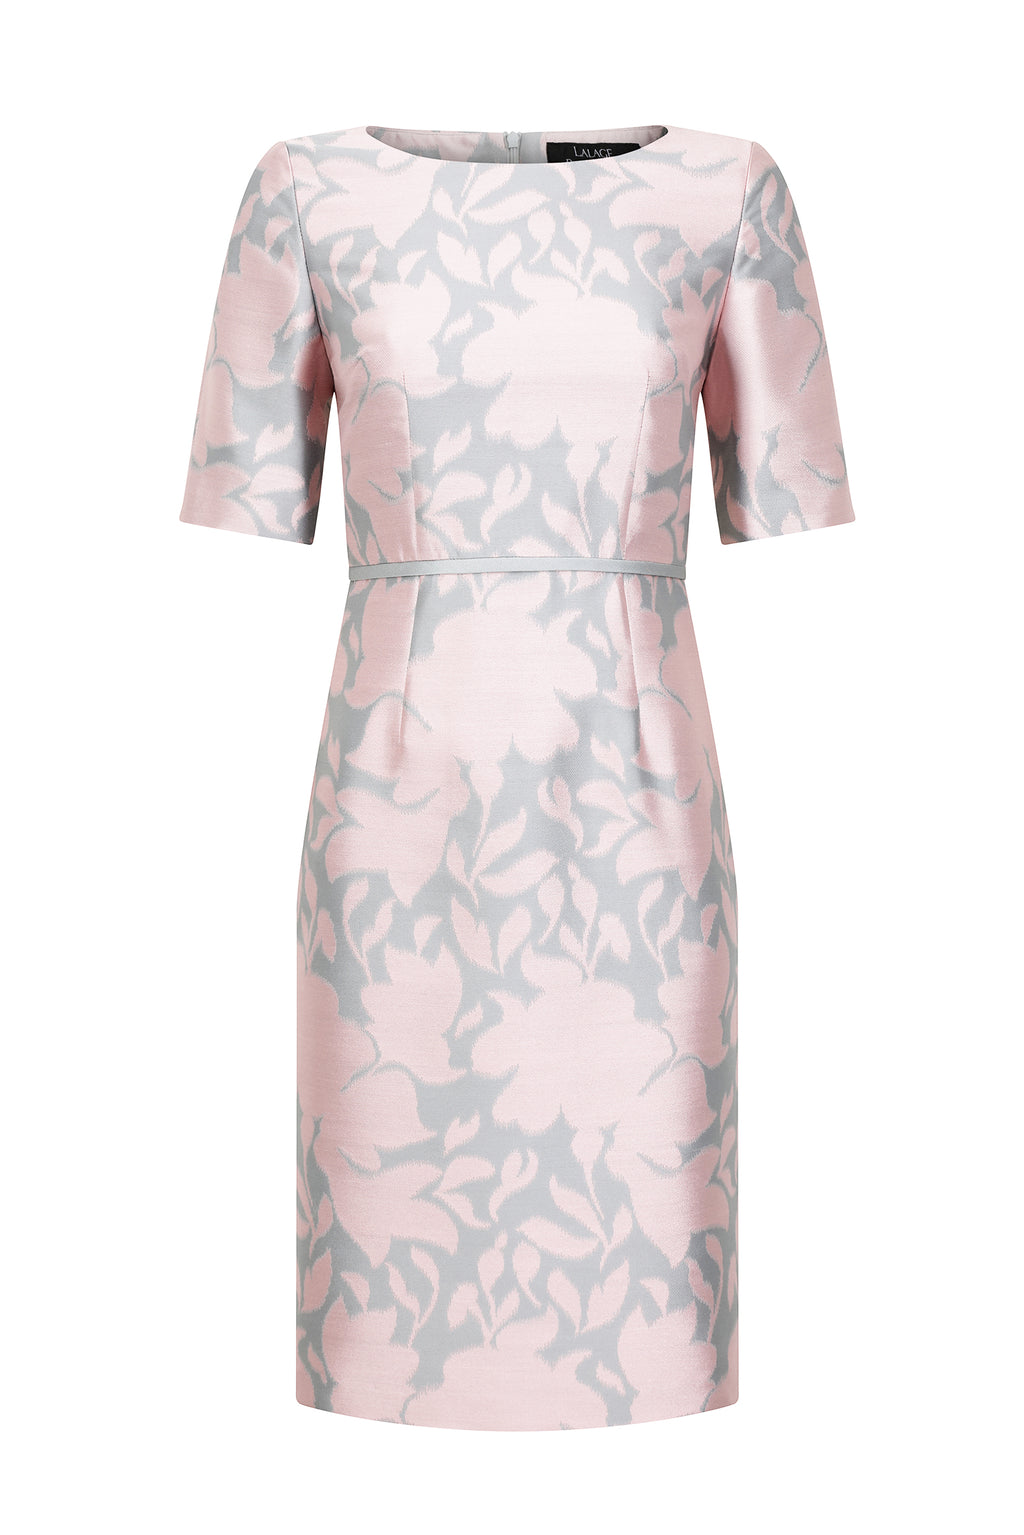 Silk Floral Jacquard Dress with Sleeves - Angie